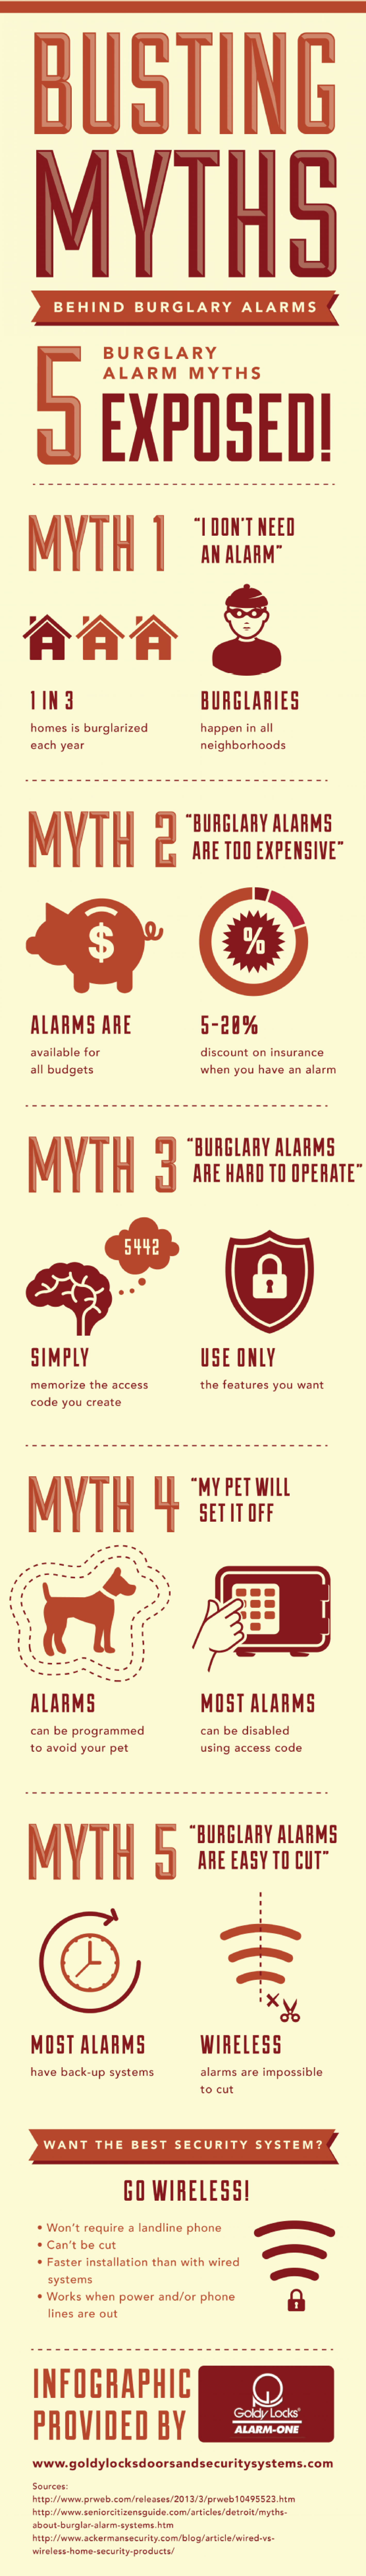 Busting Myths Behind Burglary Alarms Infographic